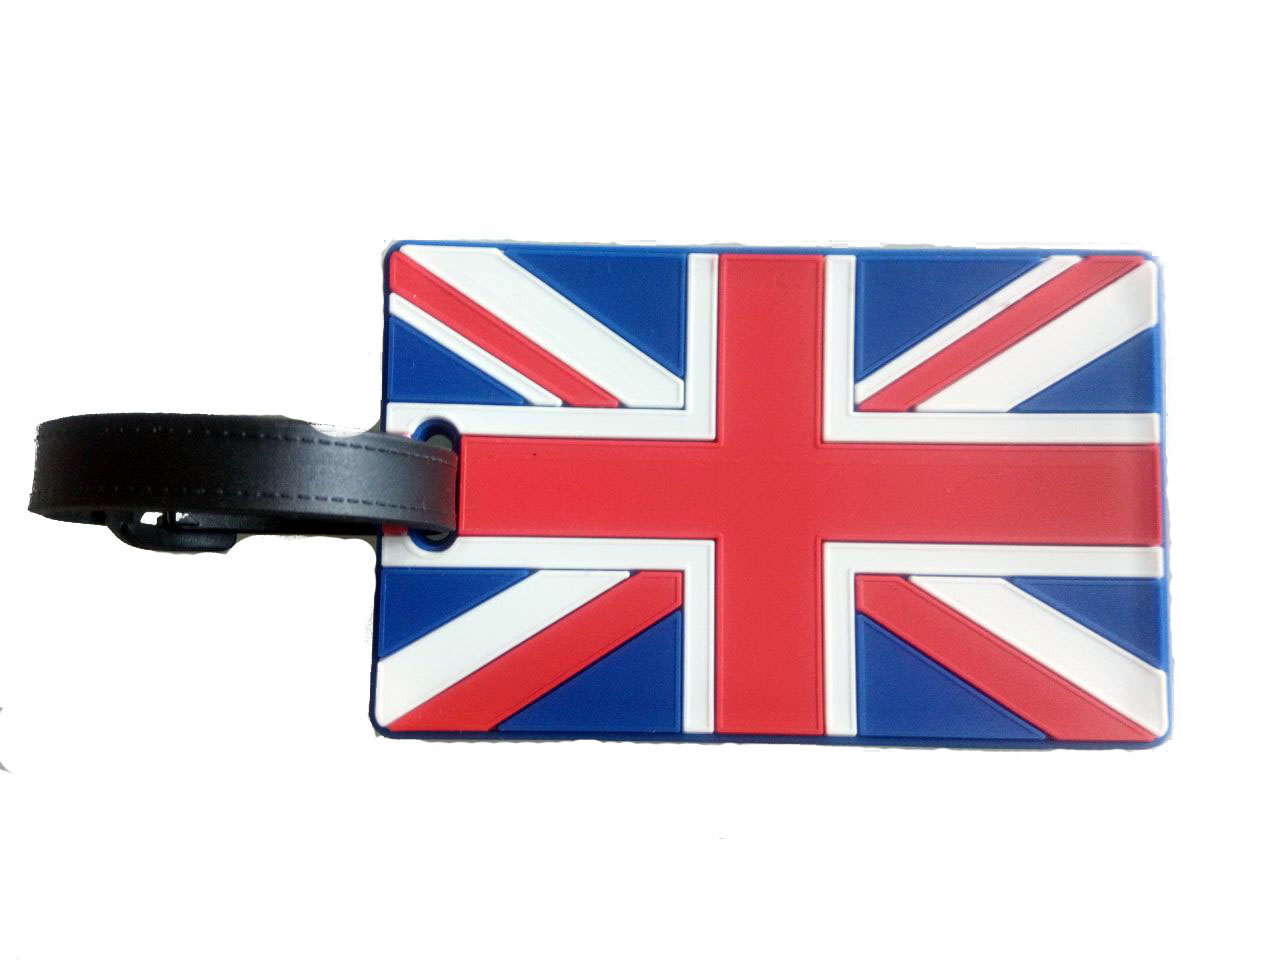 1 pcs AS kad nama bagasi Travel UK Country Flag Luggage Tag tag beg